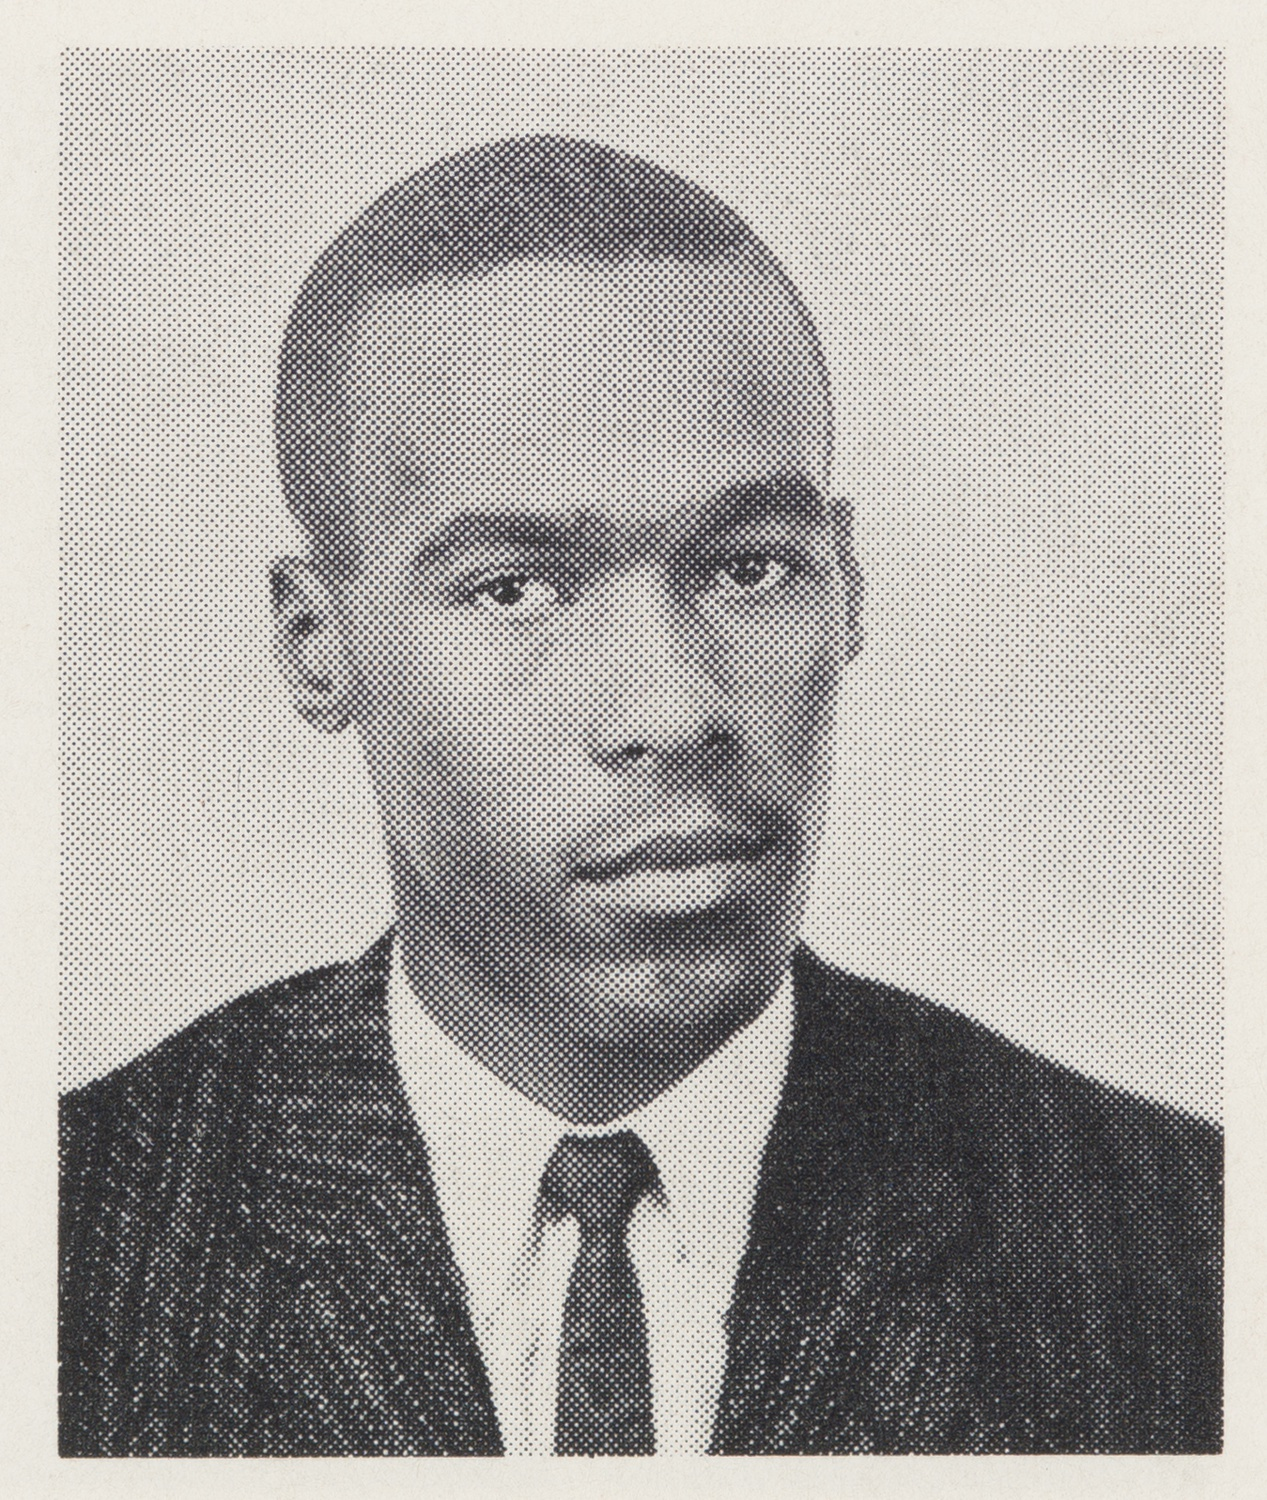 Kent A. Garrett Jr.'s '63 headshot in the Harvard Yearbook. Garrett was one of a handful of Black students that attended Harvard at the time.